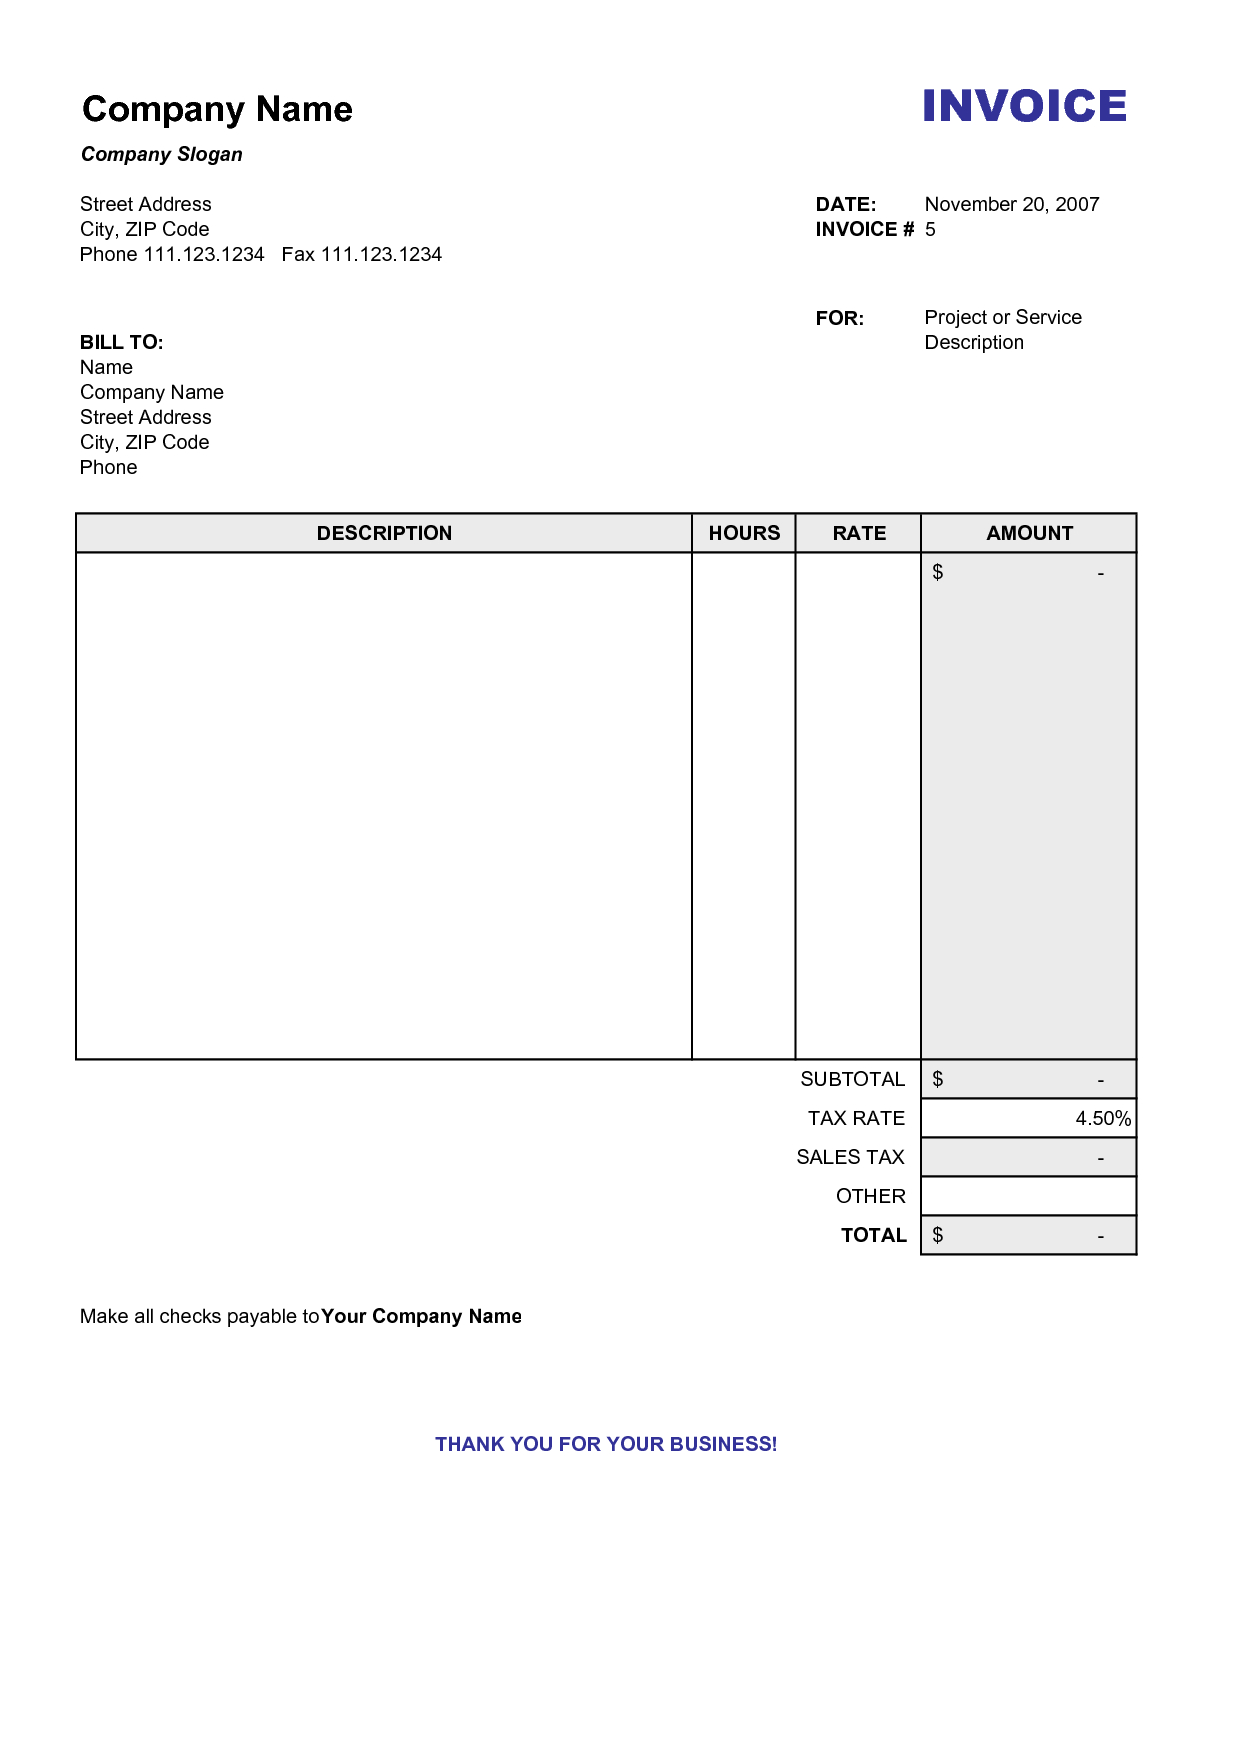 Blank Billing Invoice | Scope Of Work Template | Organization - Free Printable Work Invoices